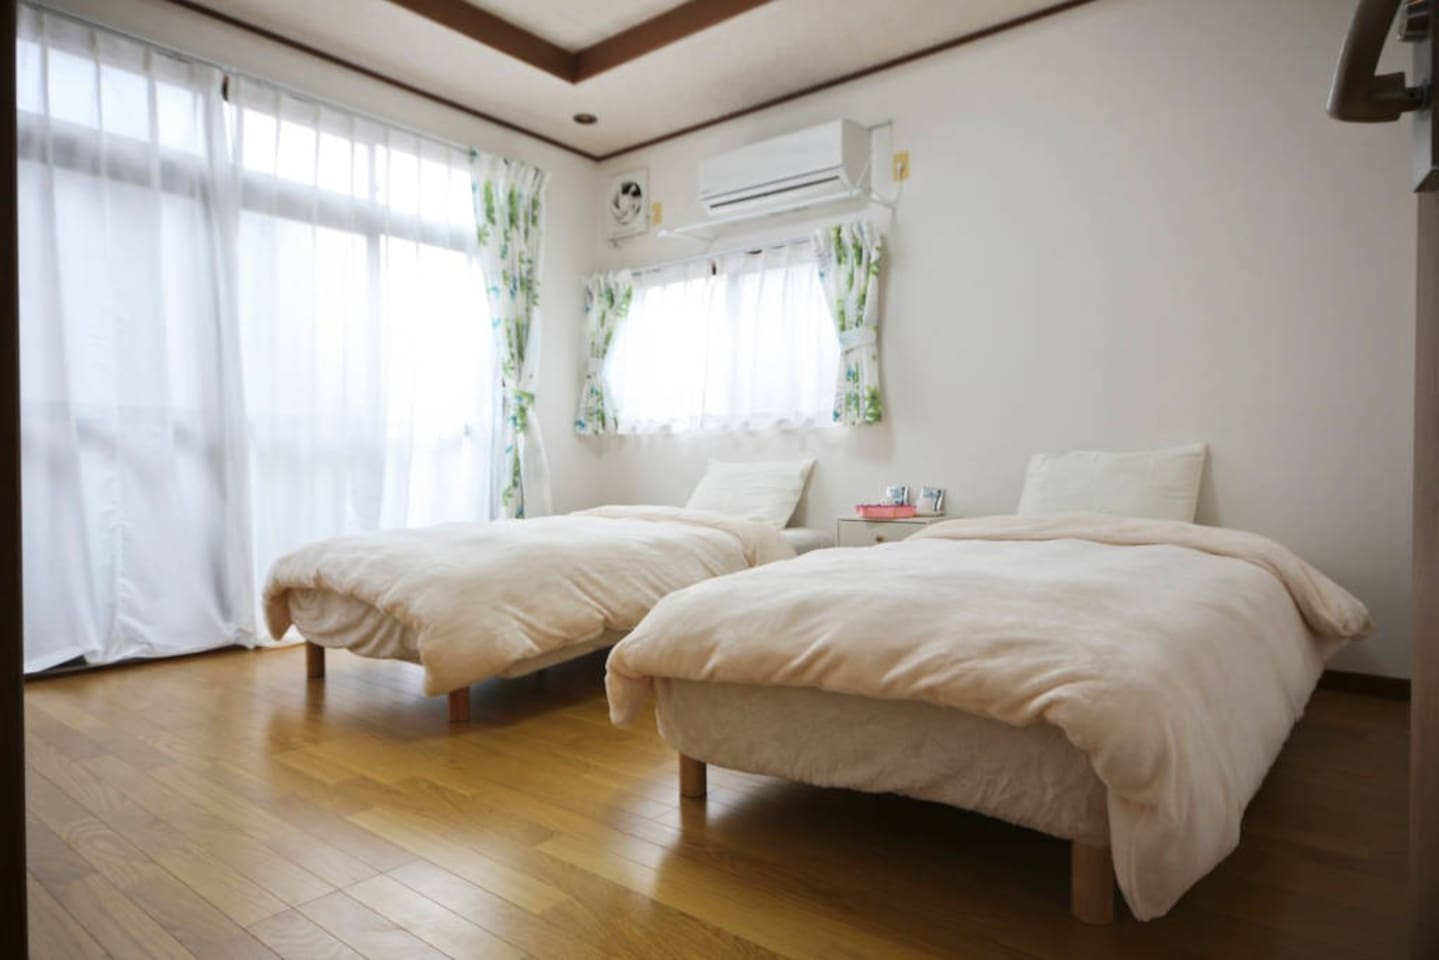 It is a very sunny Western-style room.